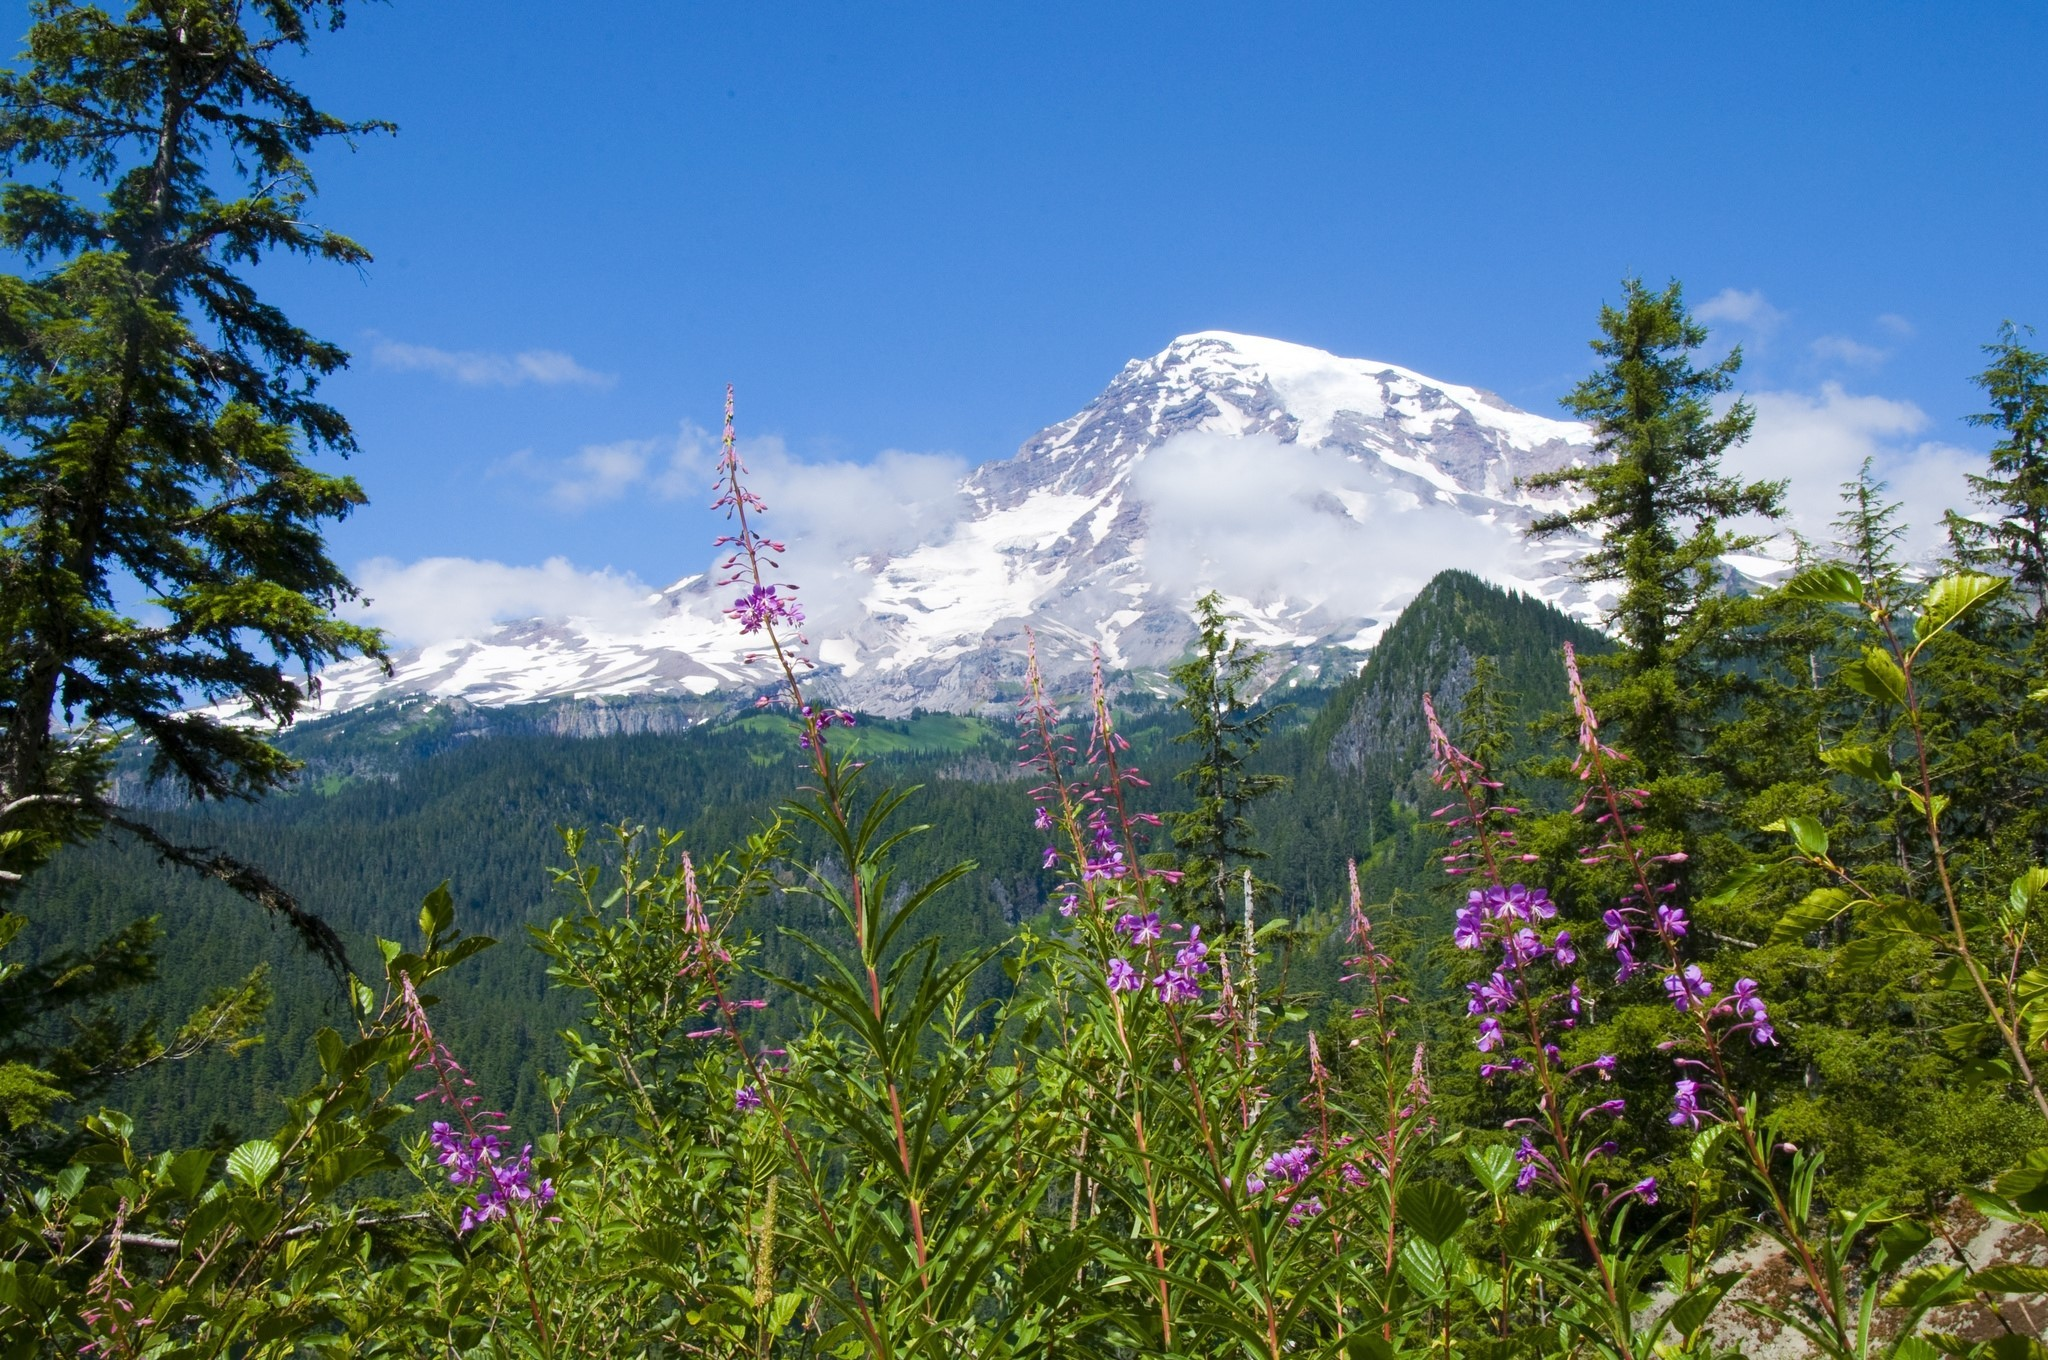 2048x1360 National park mount rainier national park, Flowers, Forests, Mountains  wallpaper and background